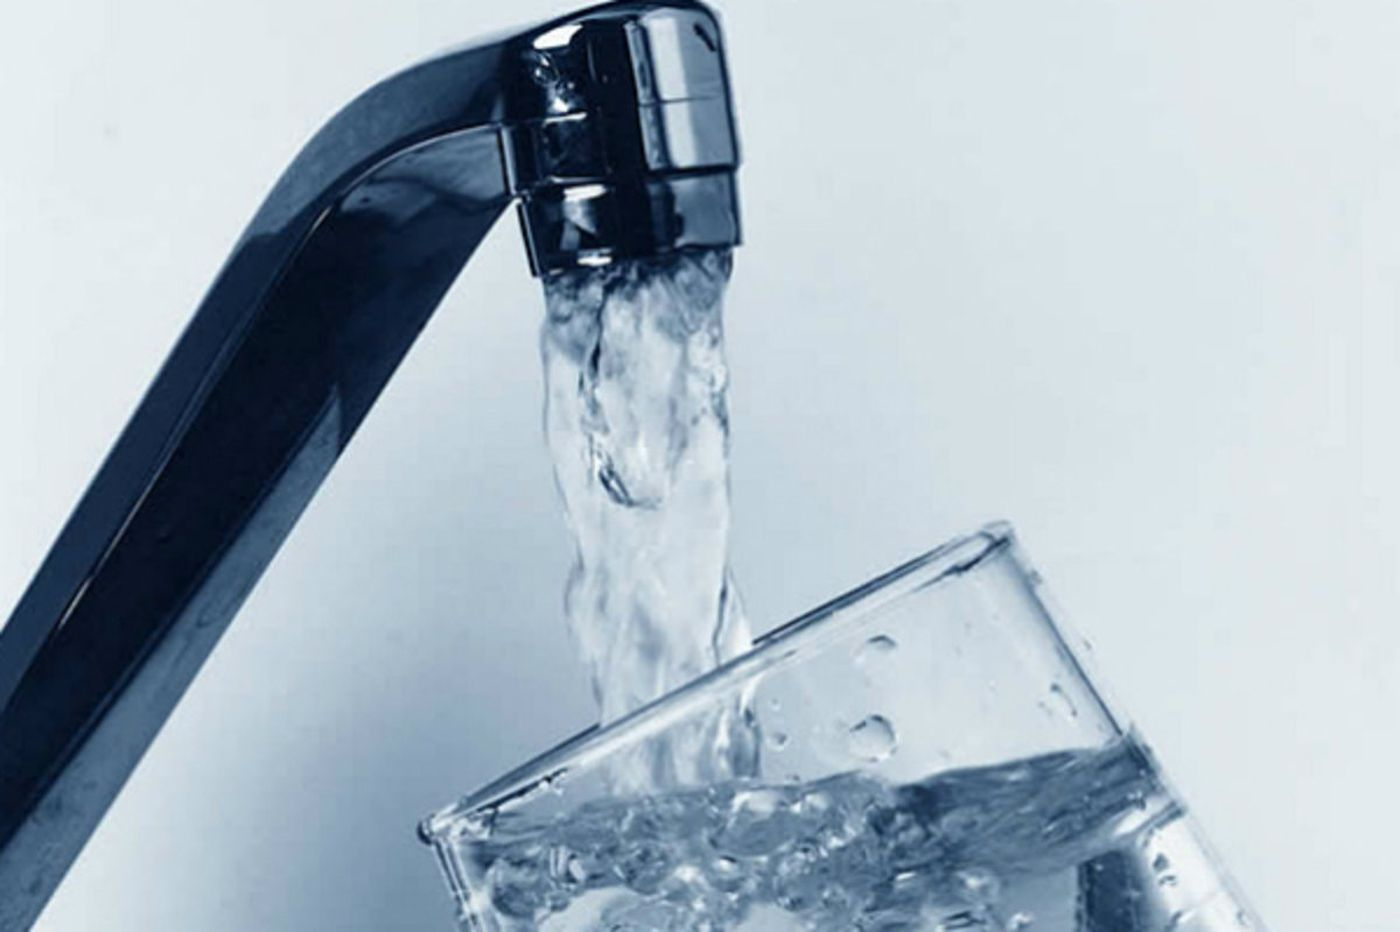 Pennsbury schools will reopen Monday, but boil-water alert remains in force